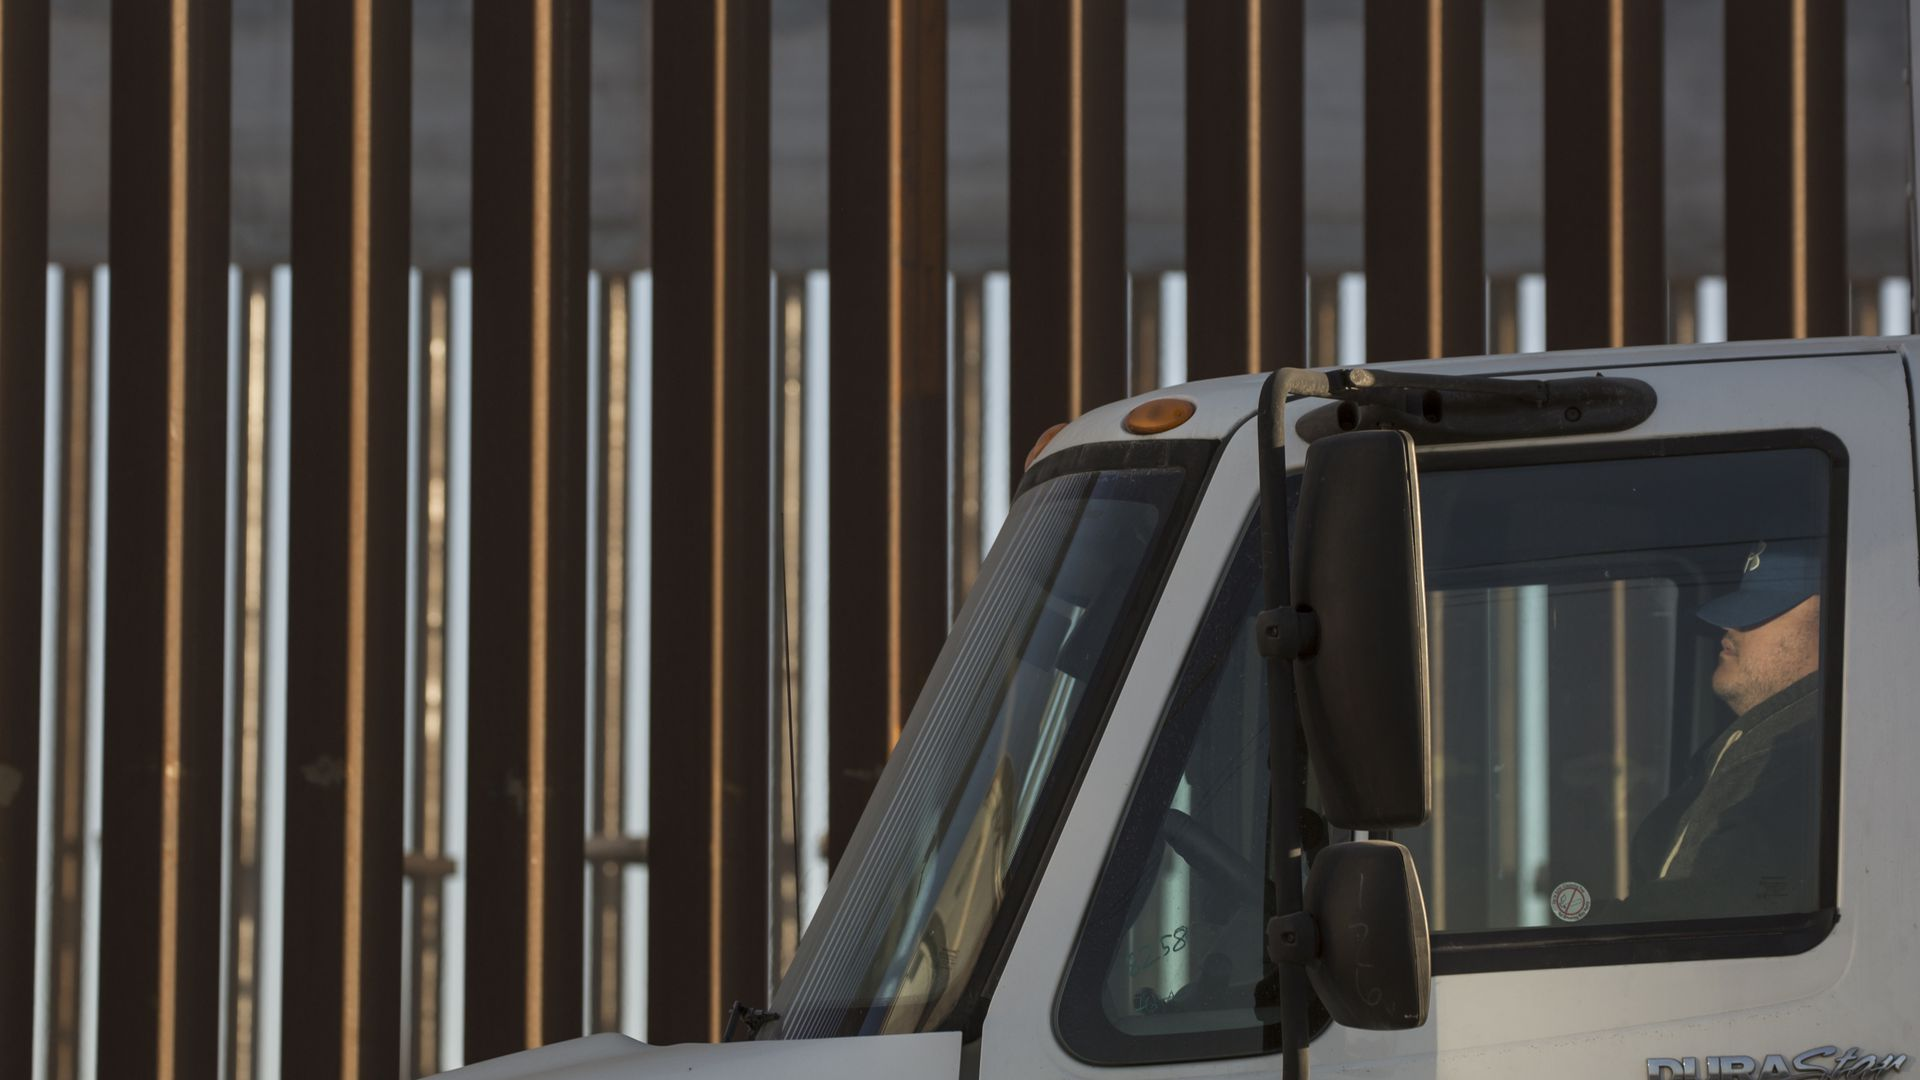 A truck in front of the border wall.